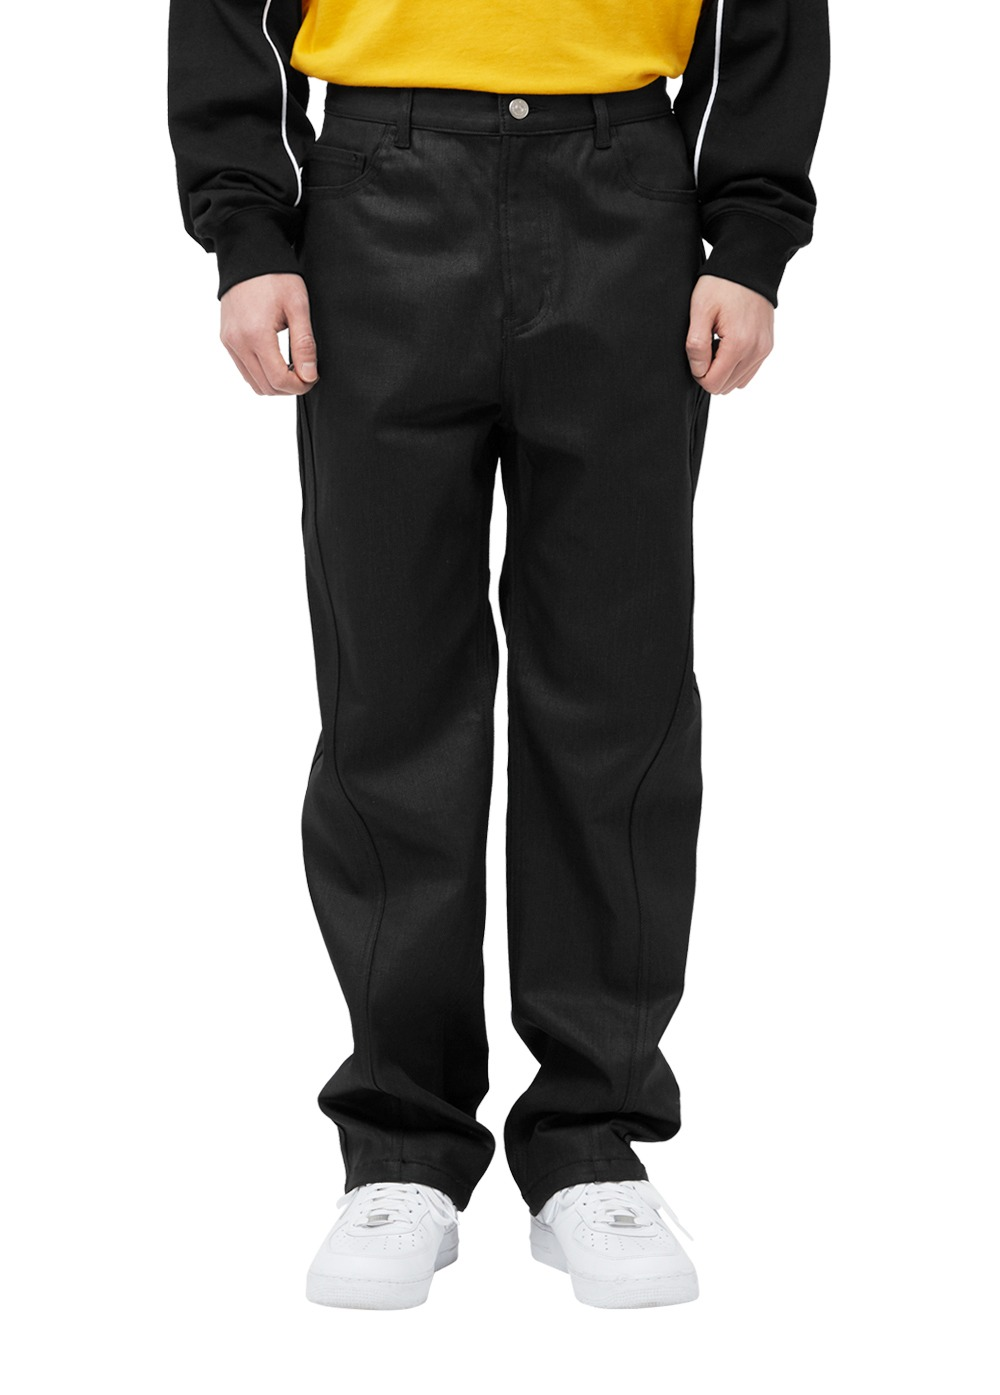 LMC TWISTED SEAM COATED JEANS black